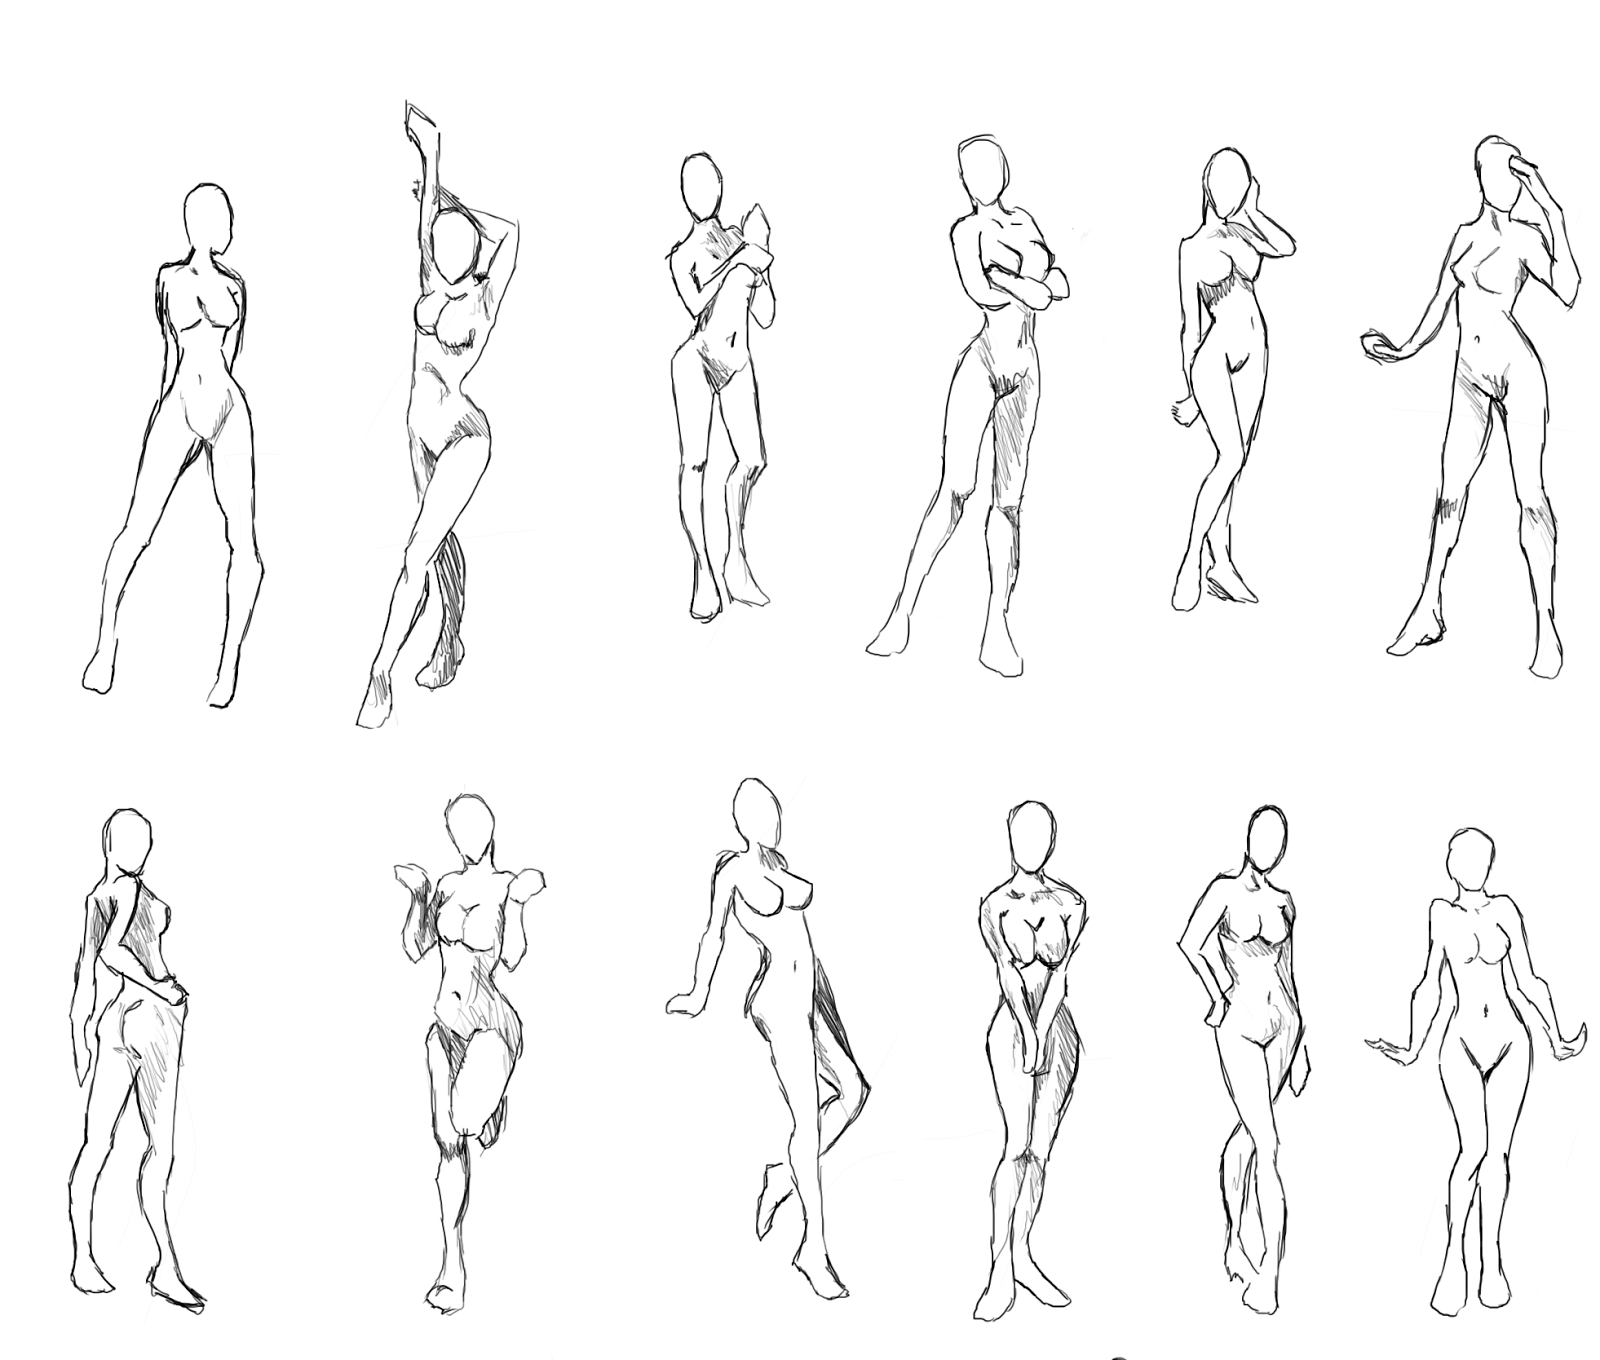 New Concept Art For The Second Cover Of Asj Body Template Figure Drawing Reference Art Reference Poses